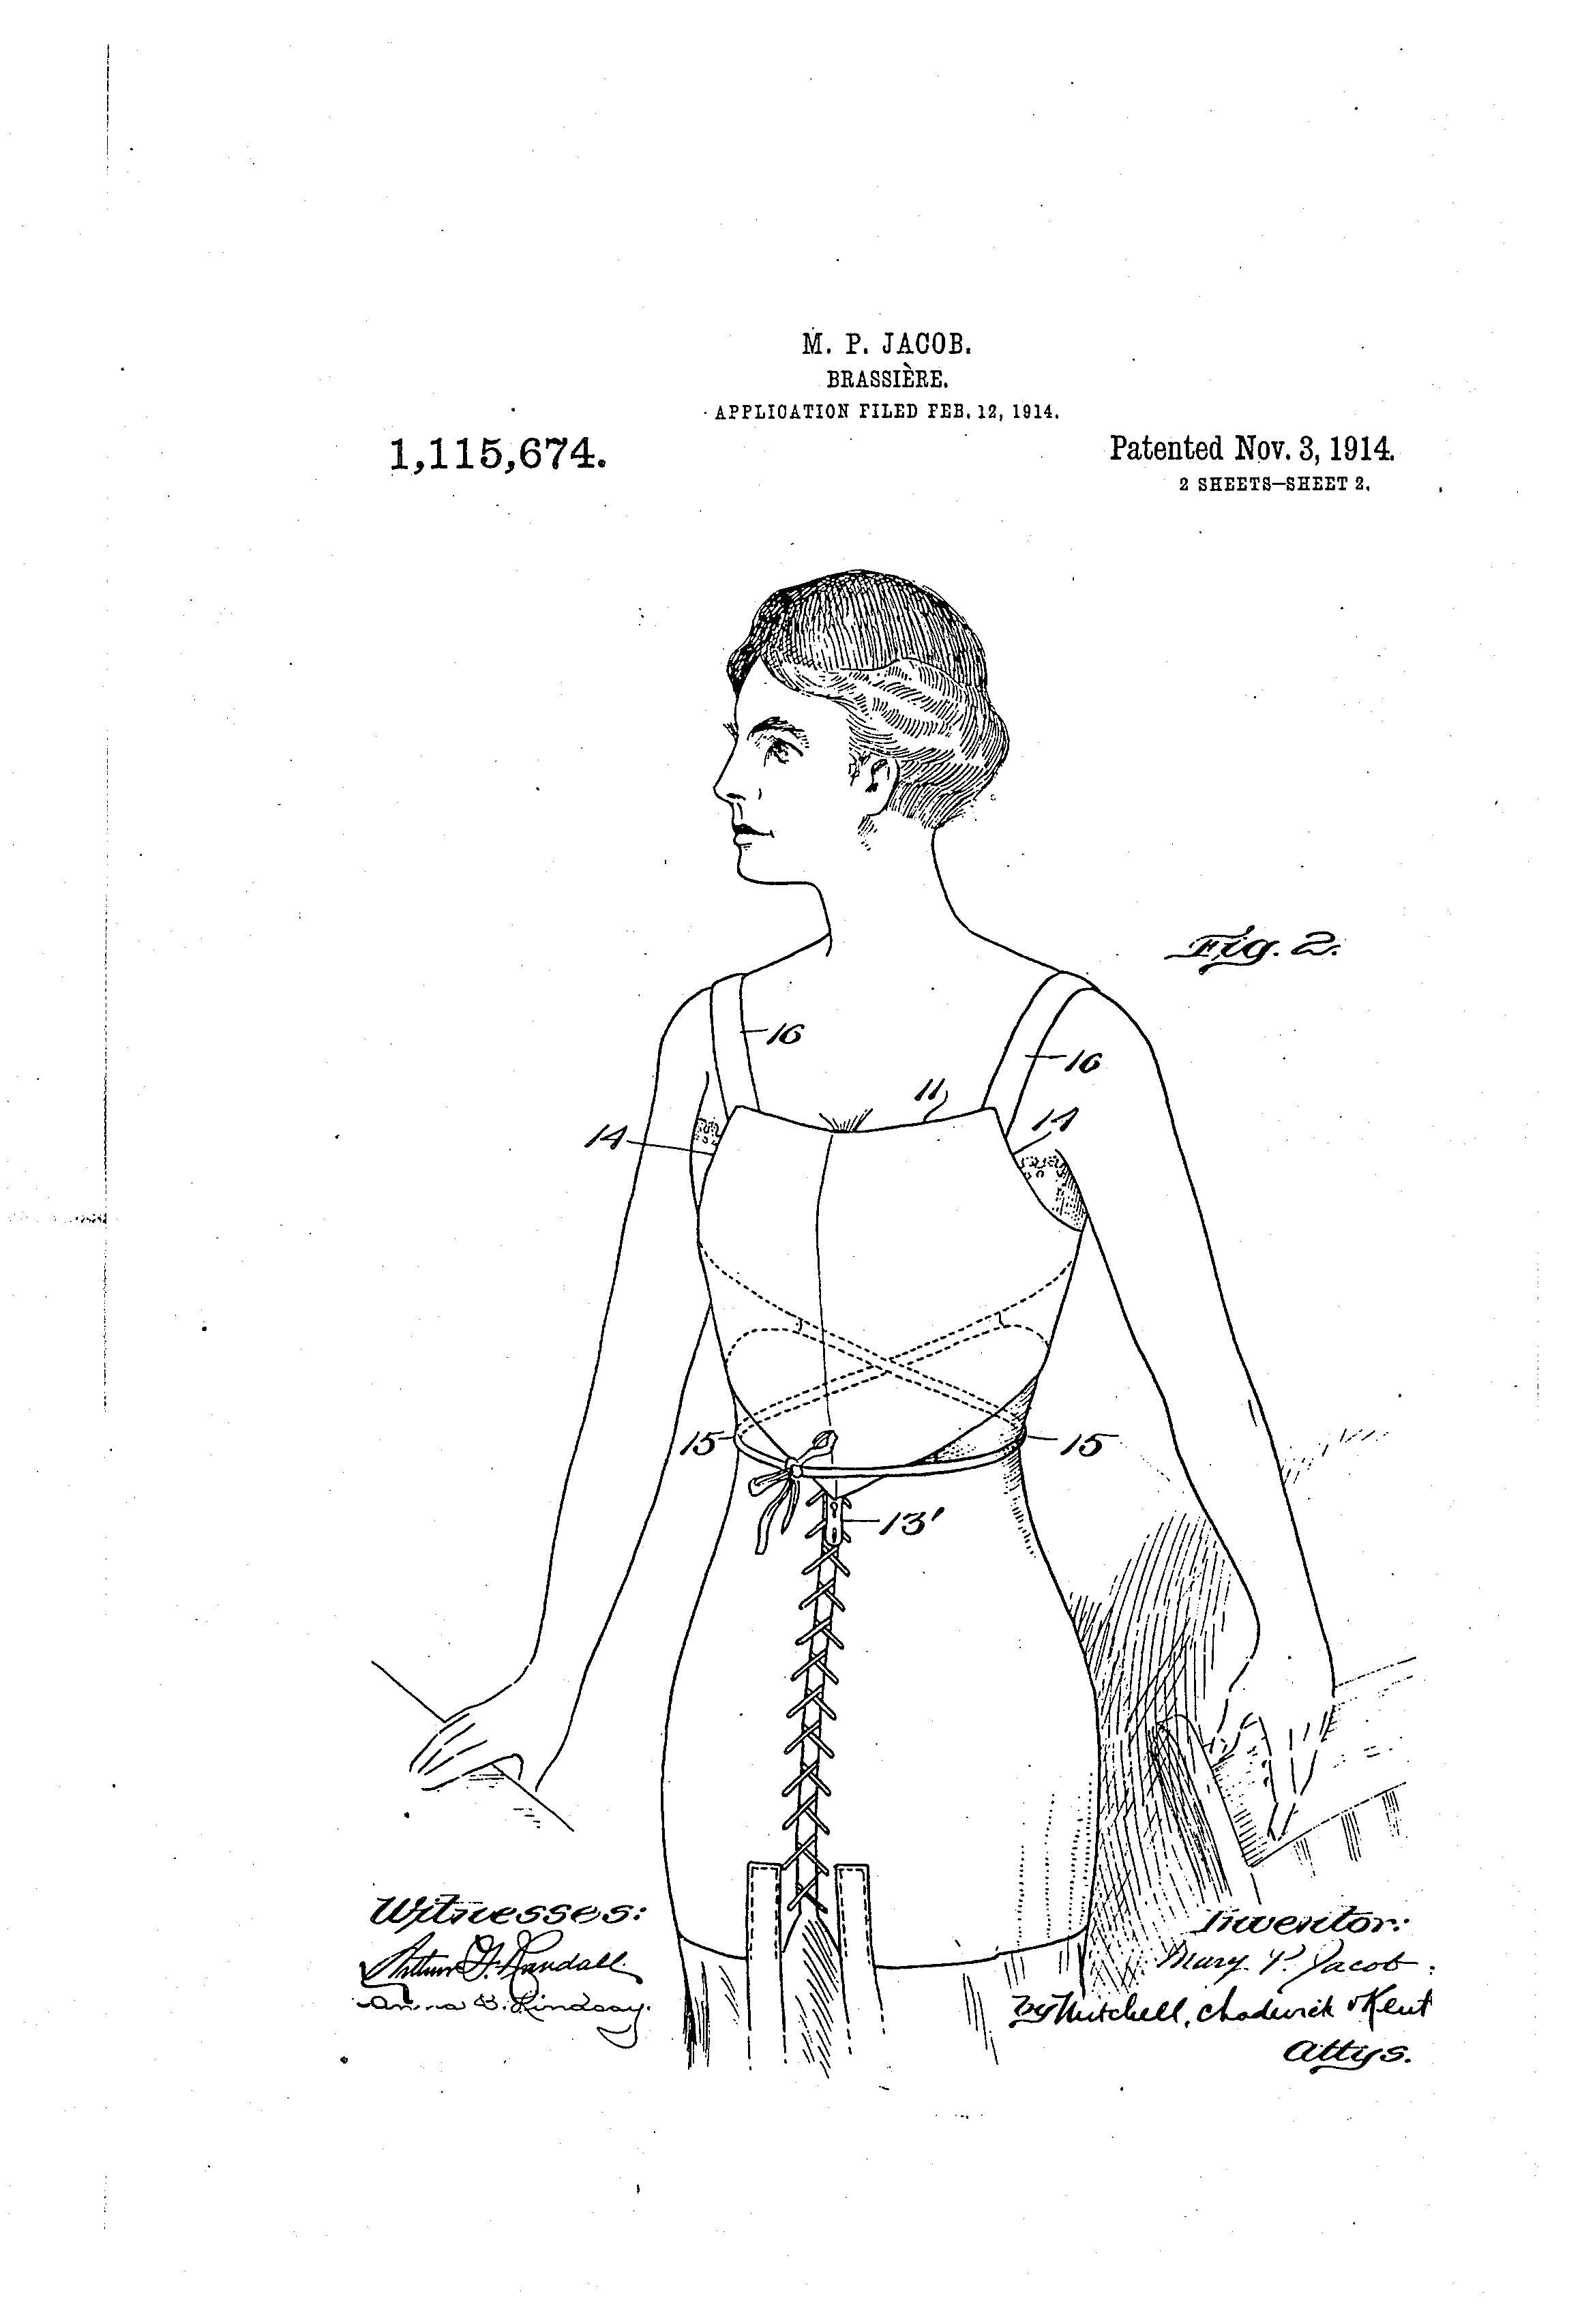 Early 20th Century Brassieres From The U.S. Patent Office